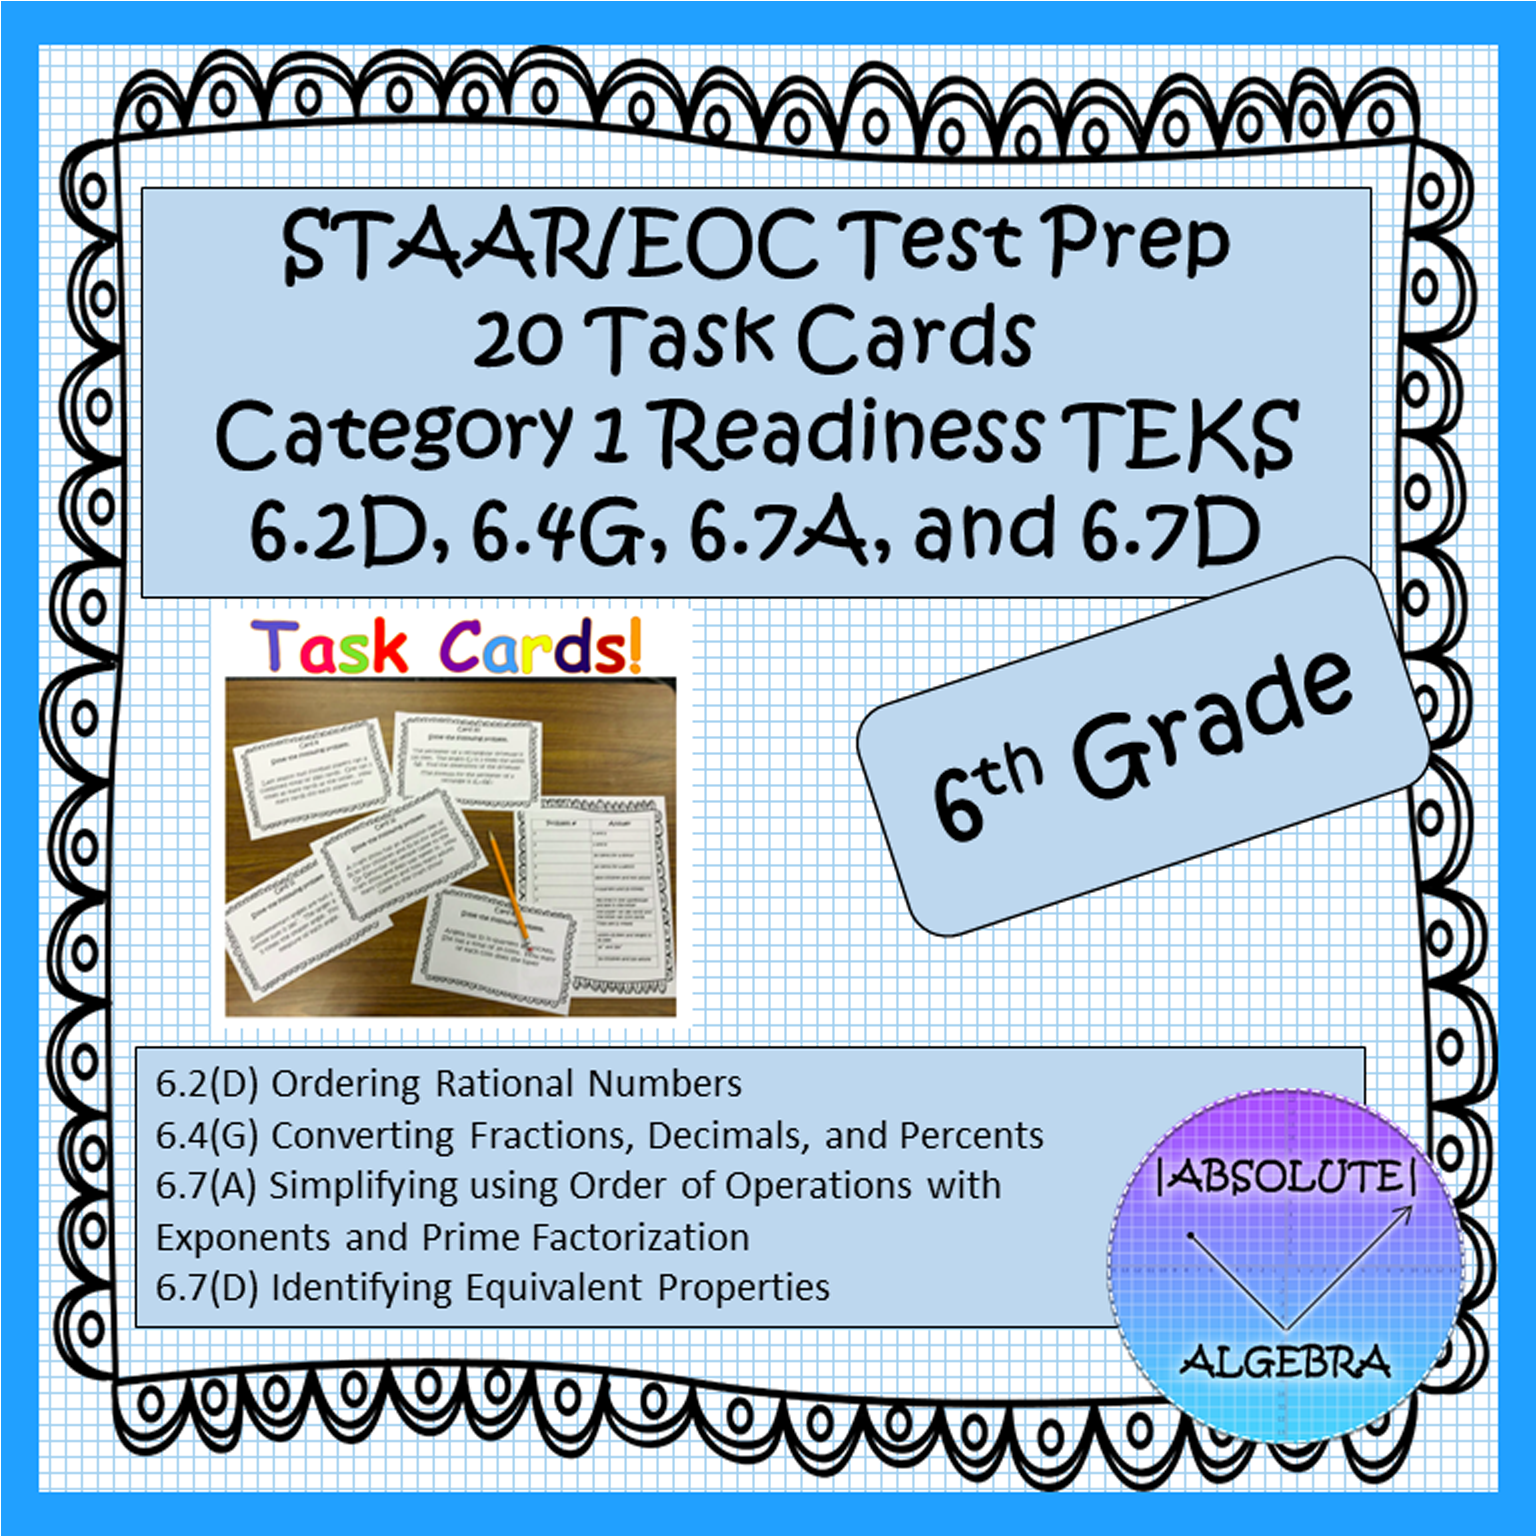 6th Grade Staar Eoc Task Cards For Category 1 6 2d 6 4g